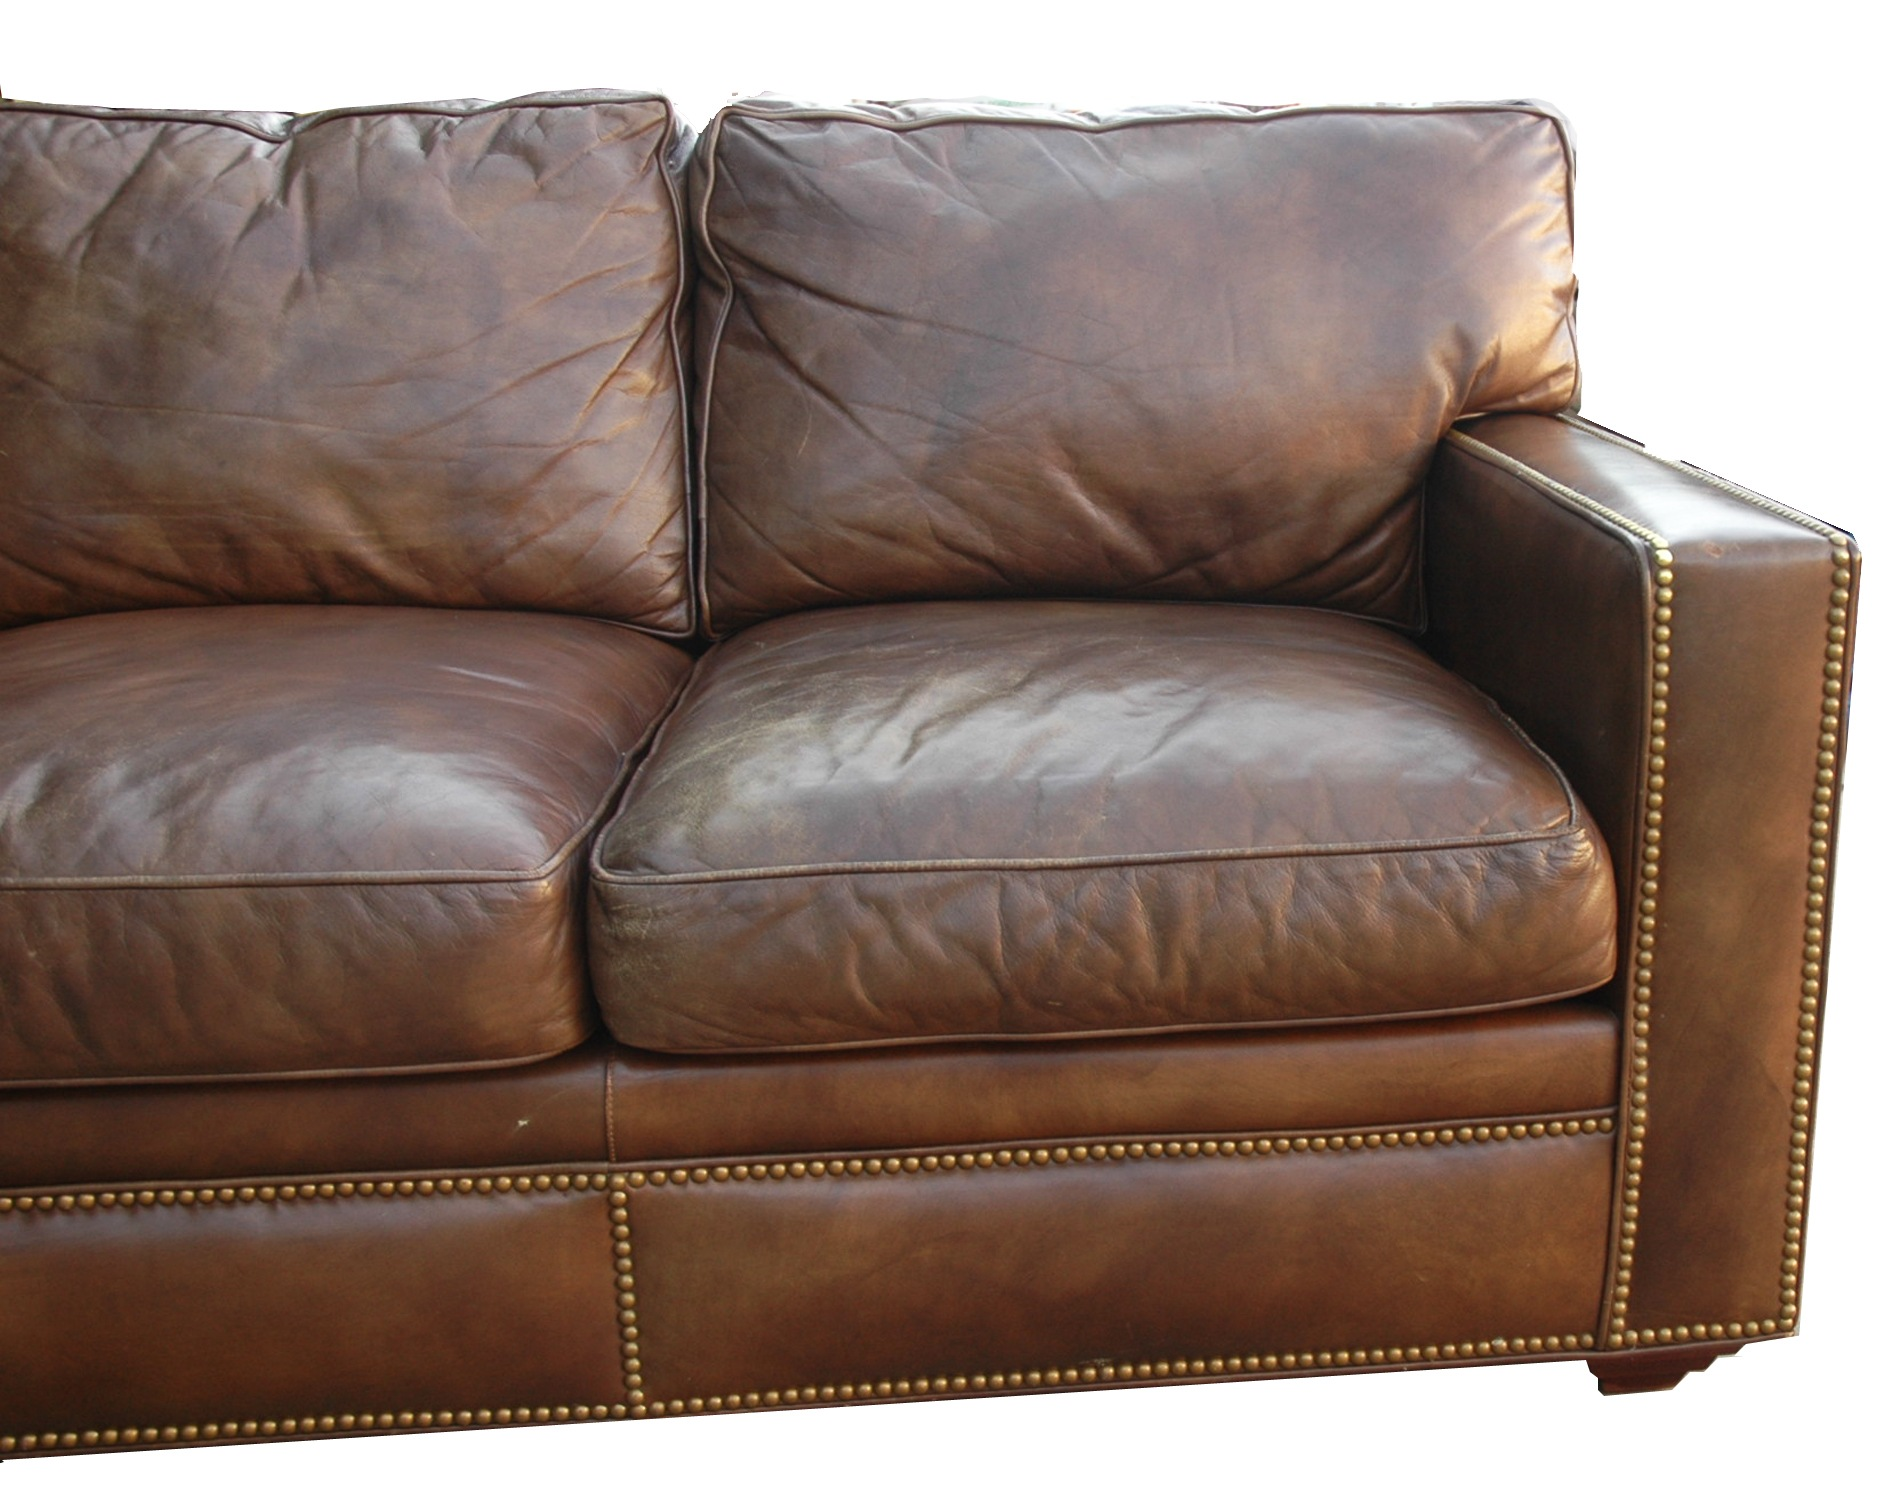 Distressed Leather Sectional Homesfeed  sc 1 st  Centerfieldbar.com : distressed leather sectional - Sectionals, Sofas & Couches